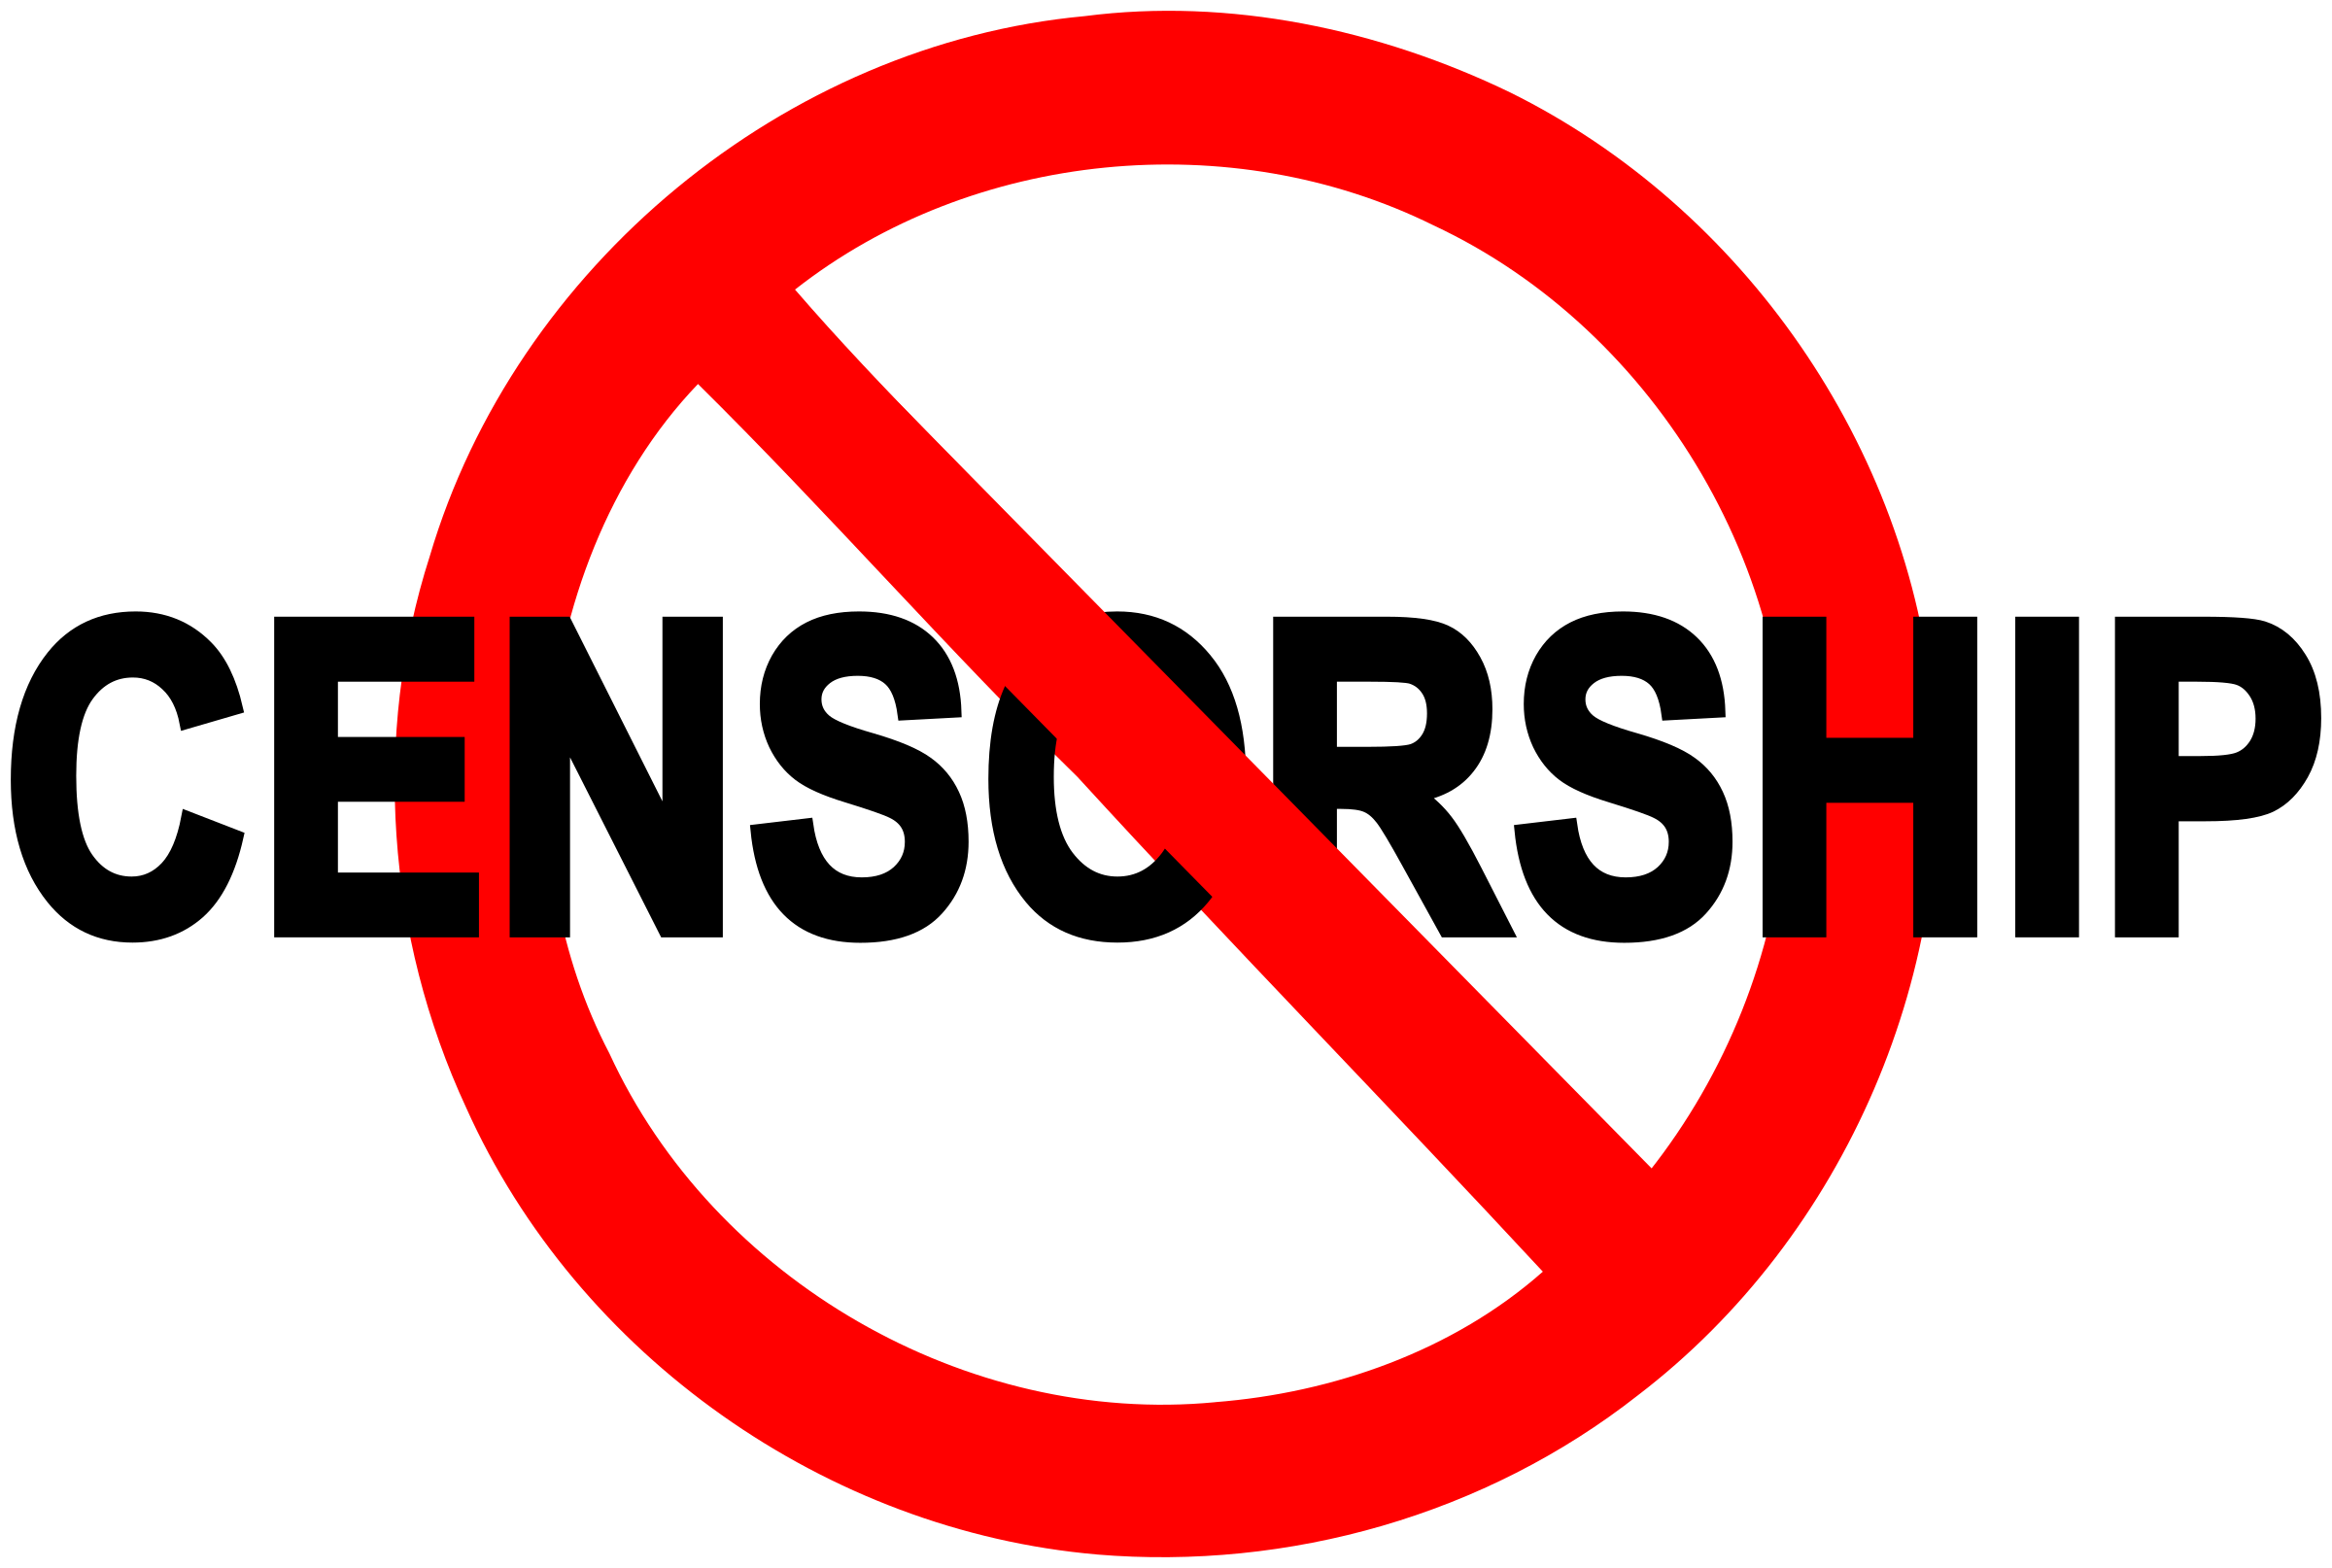 Censored sign png. Clipart no censorship big